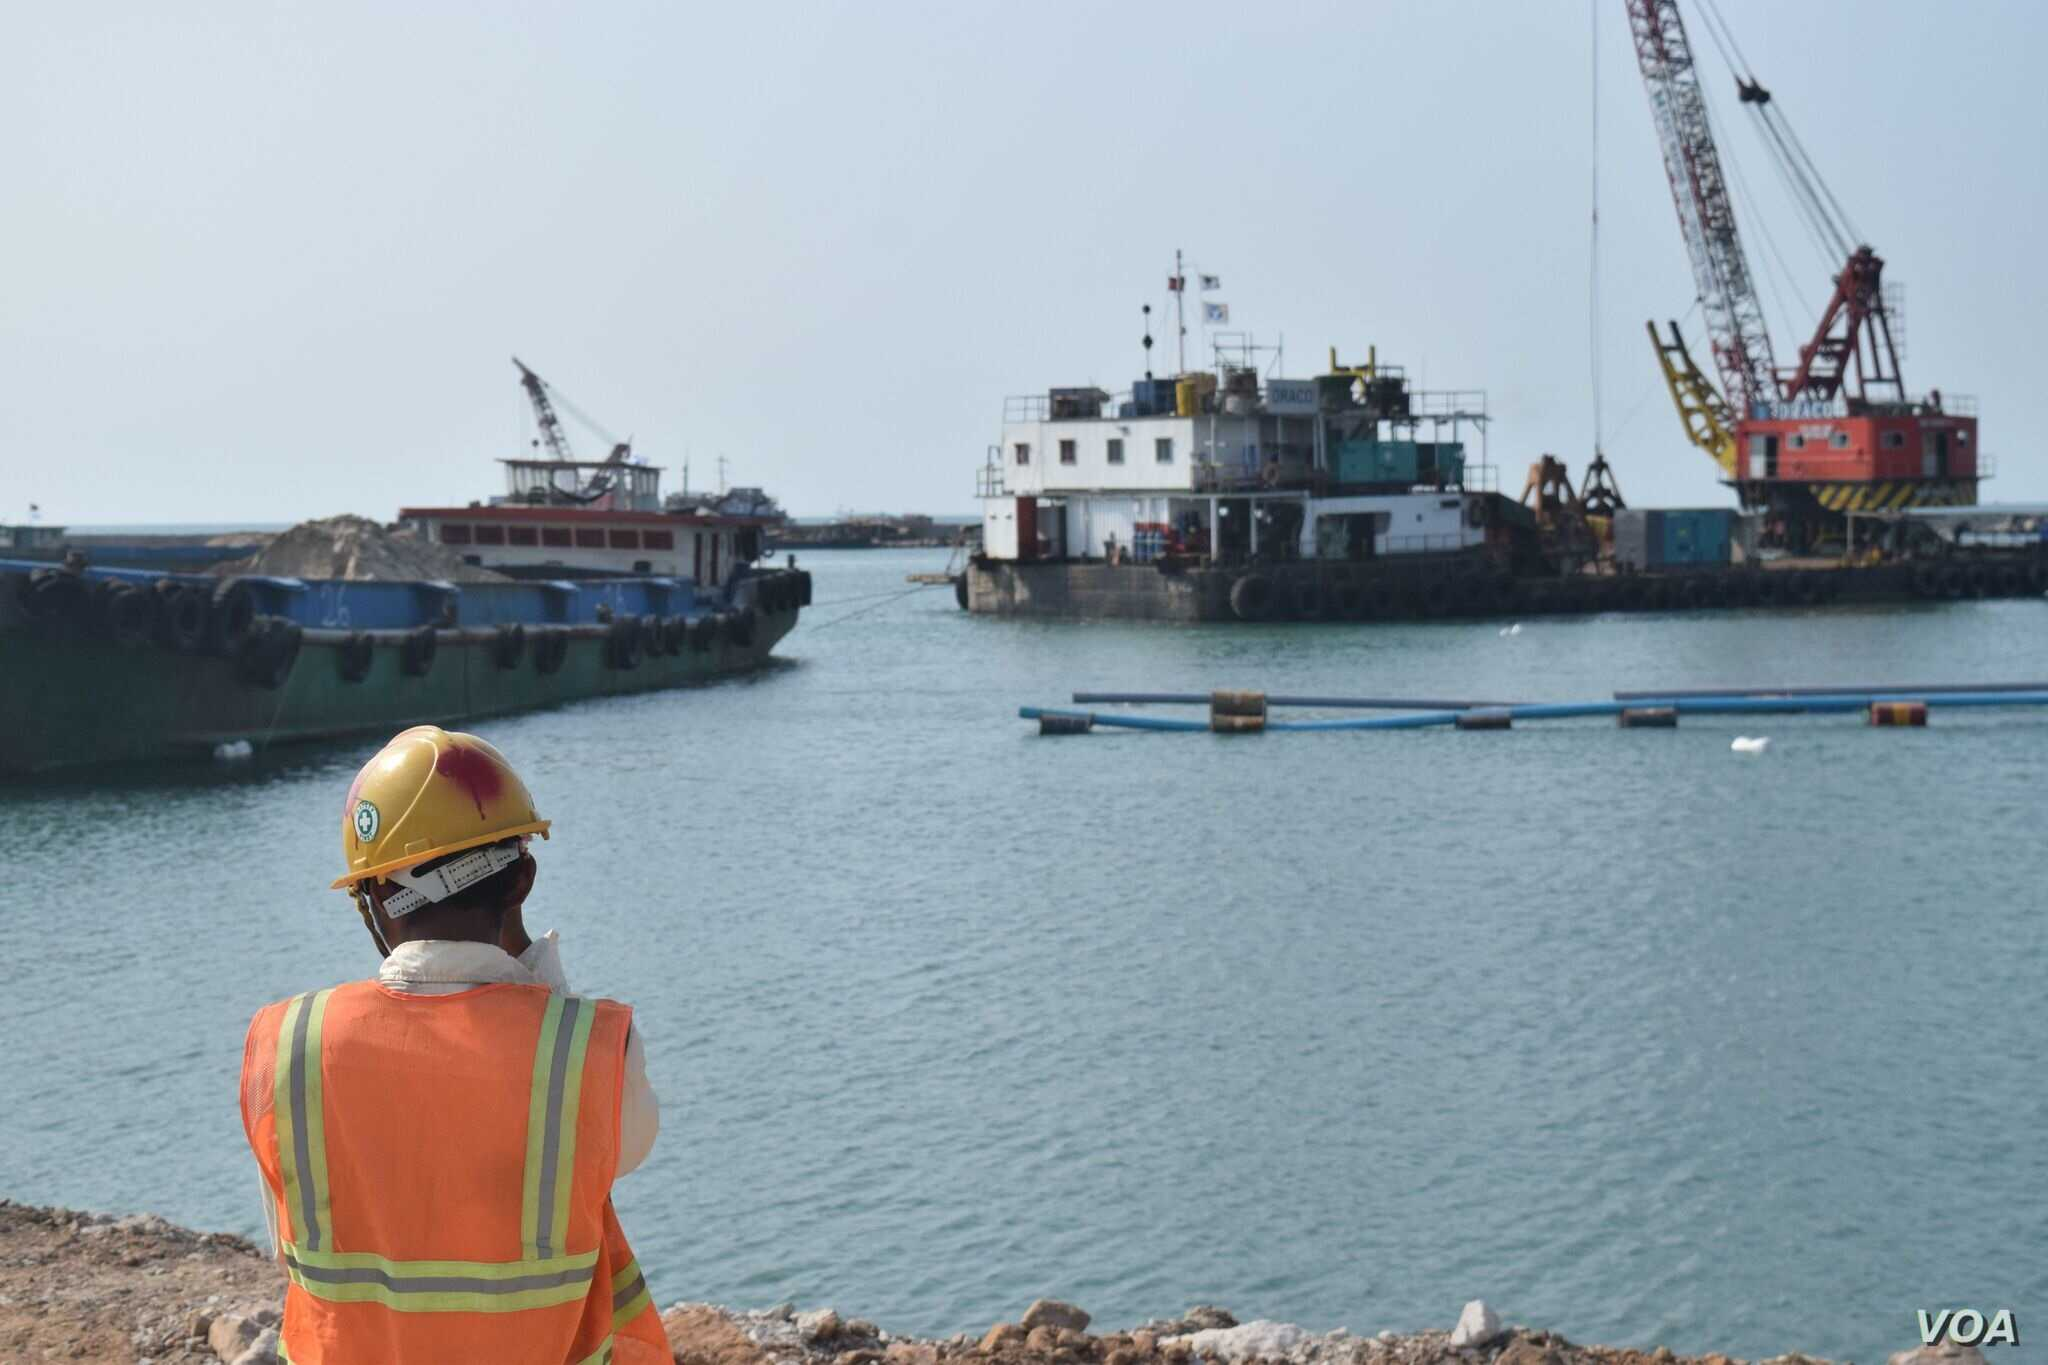 Donor support is enabling a much-needed expansion of Cambodia's largest seaport in Sihanoukville. (D. de Carteret for VOA)